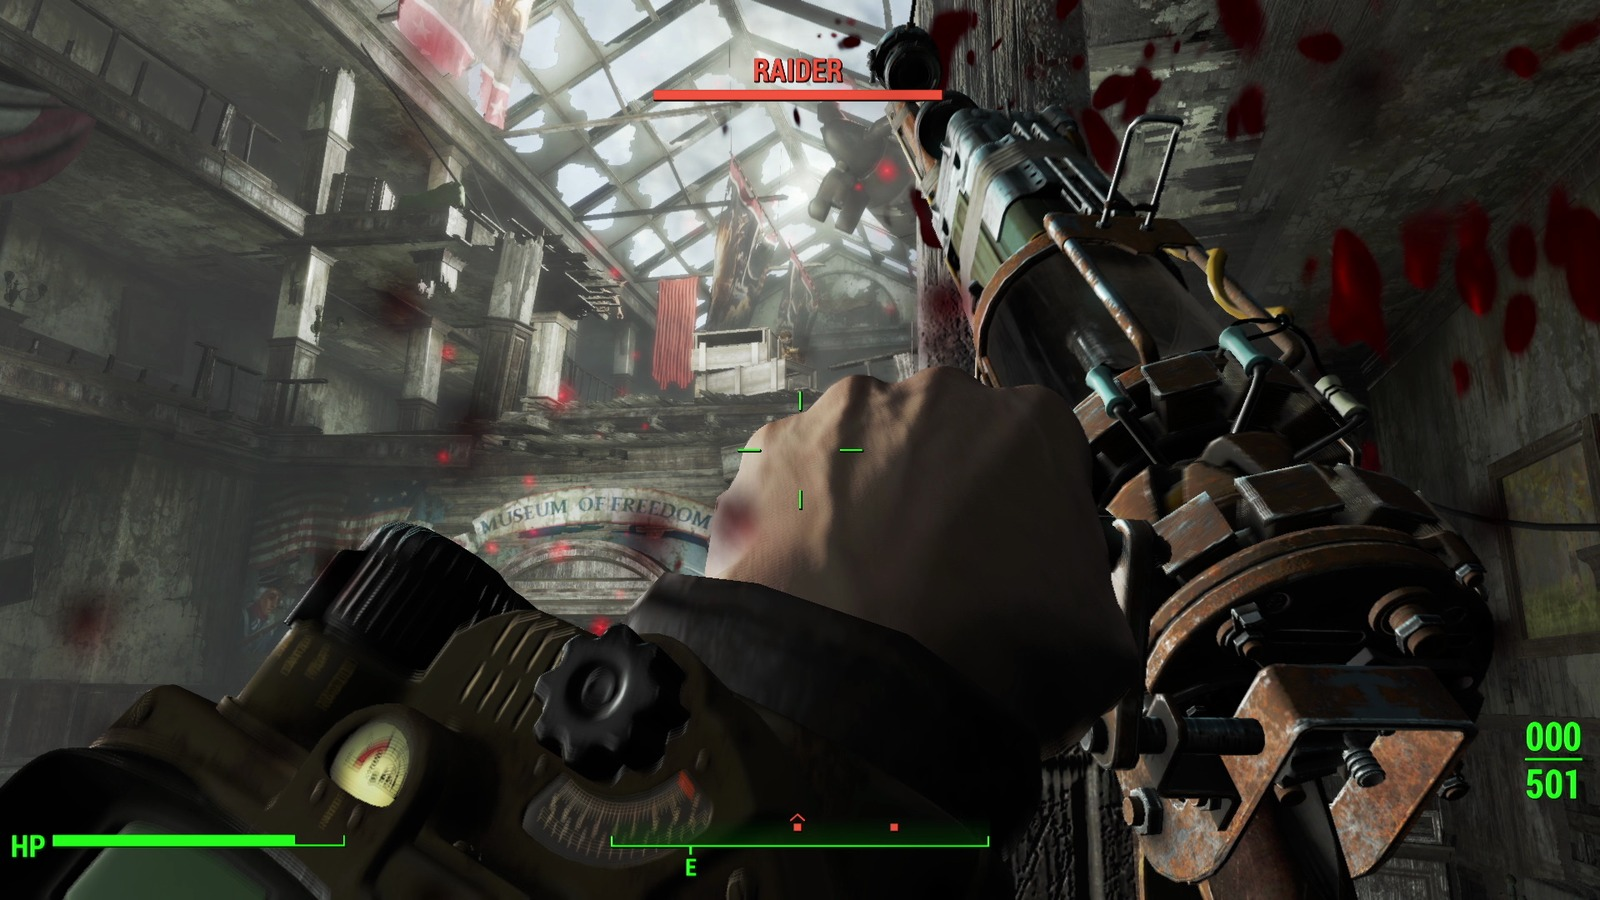 Fallout 4 for PS4 image